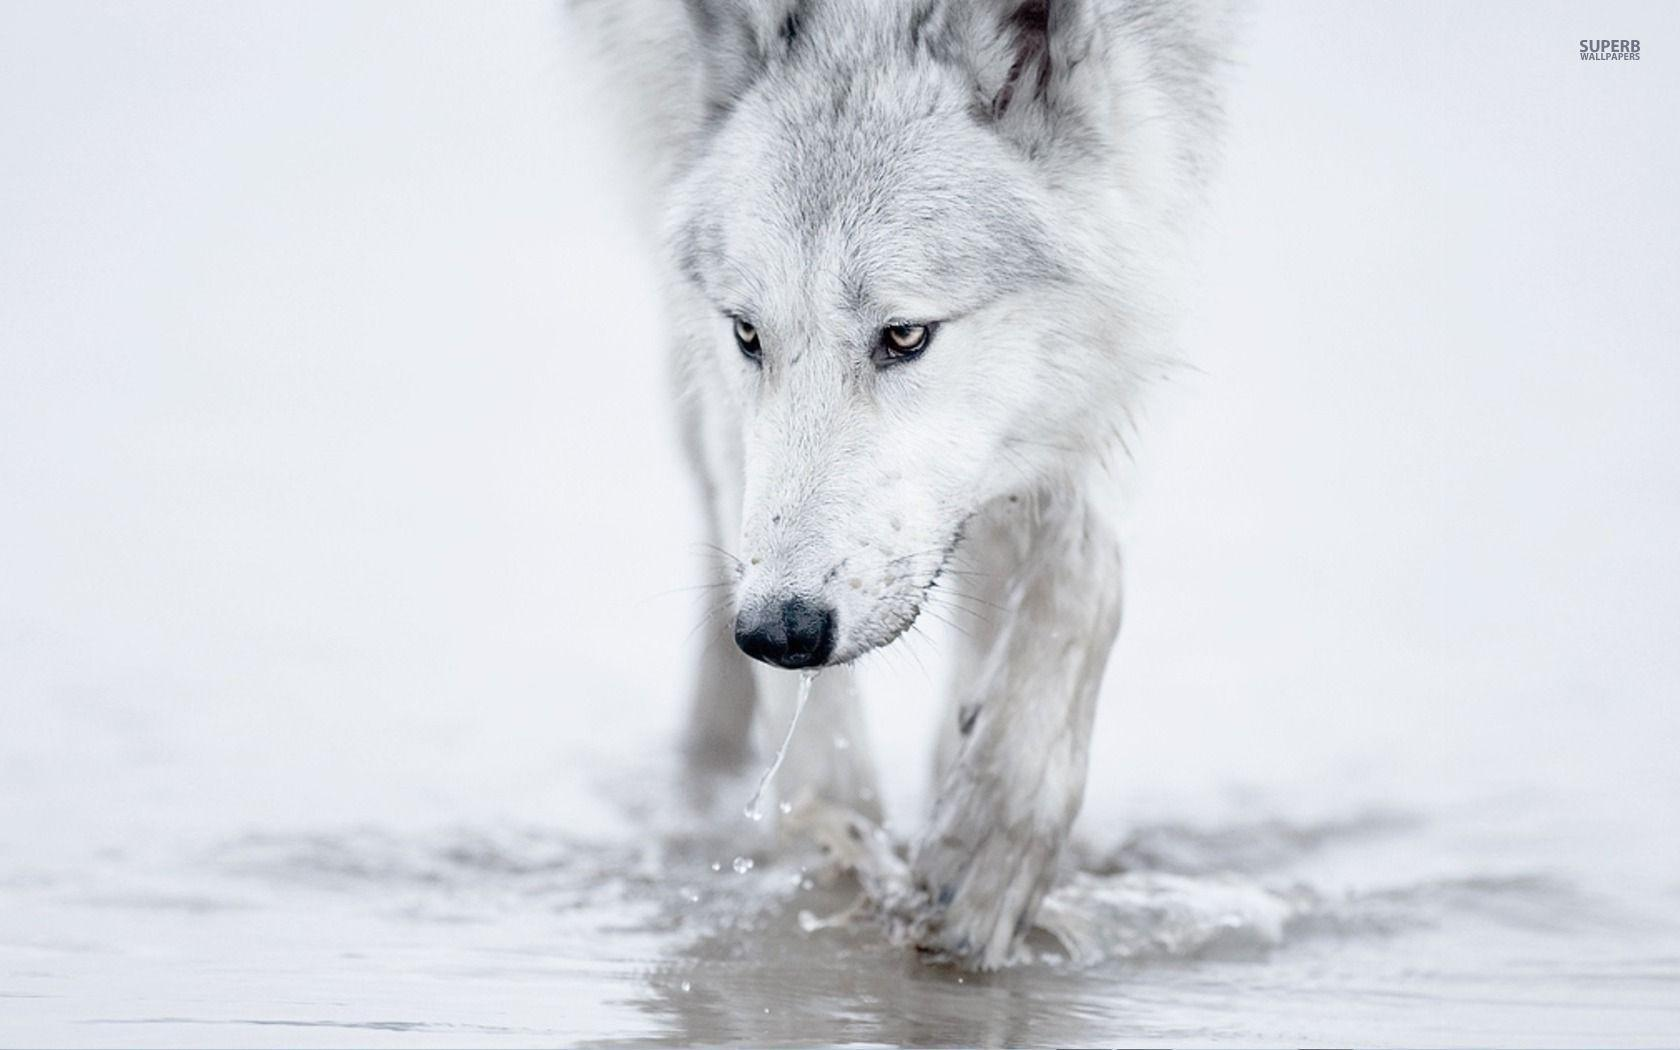 wolf wallpapers ndash animal - photo #27